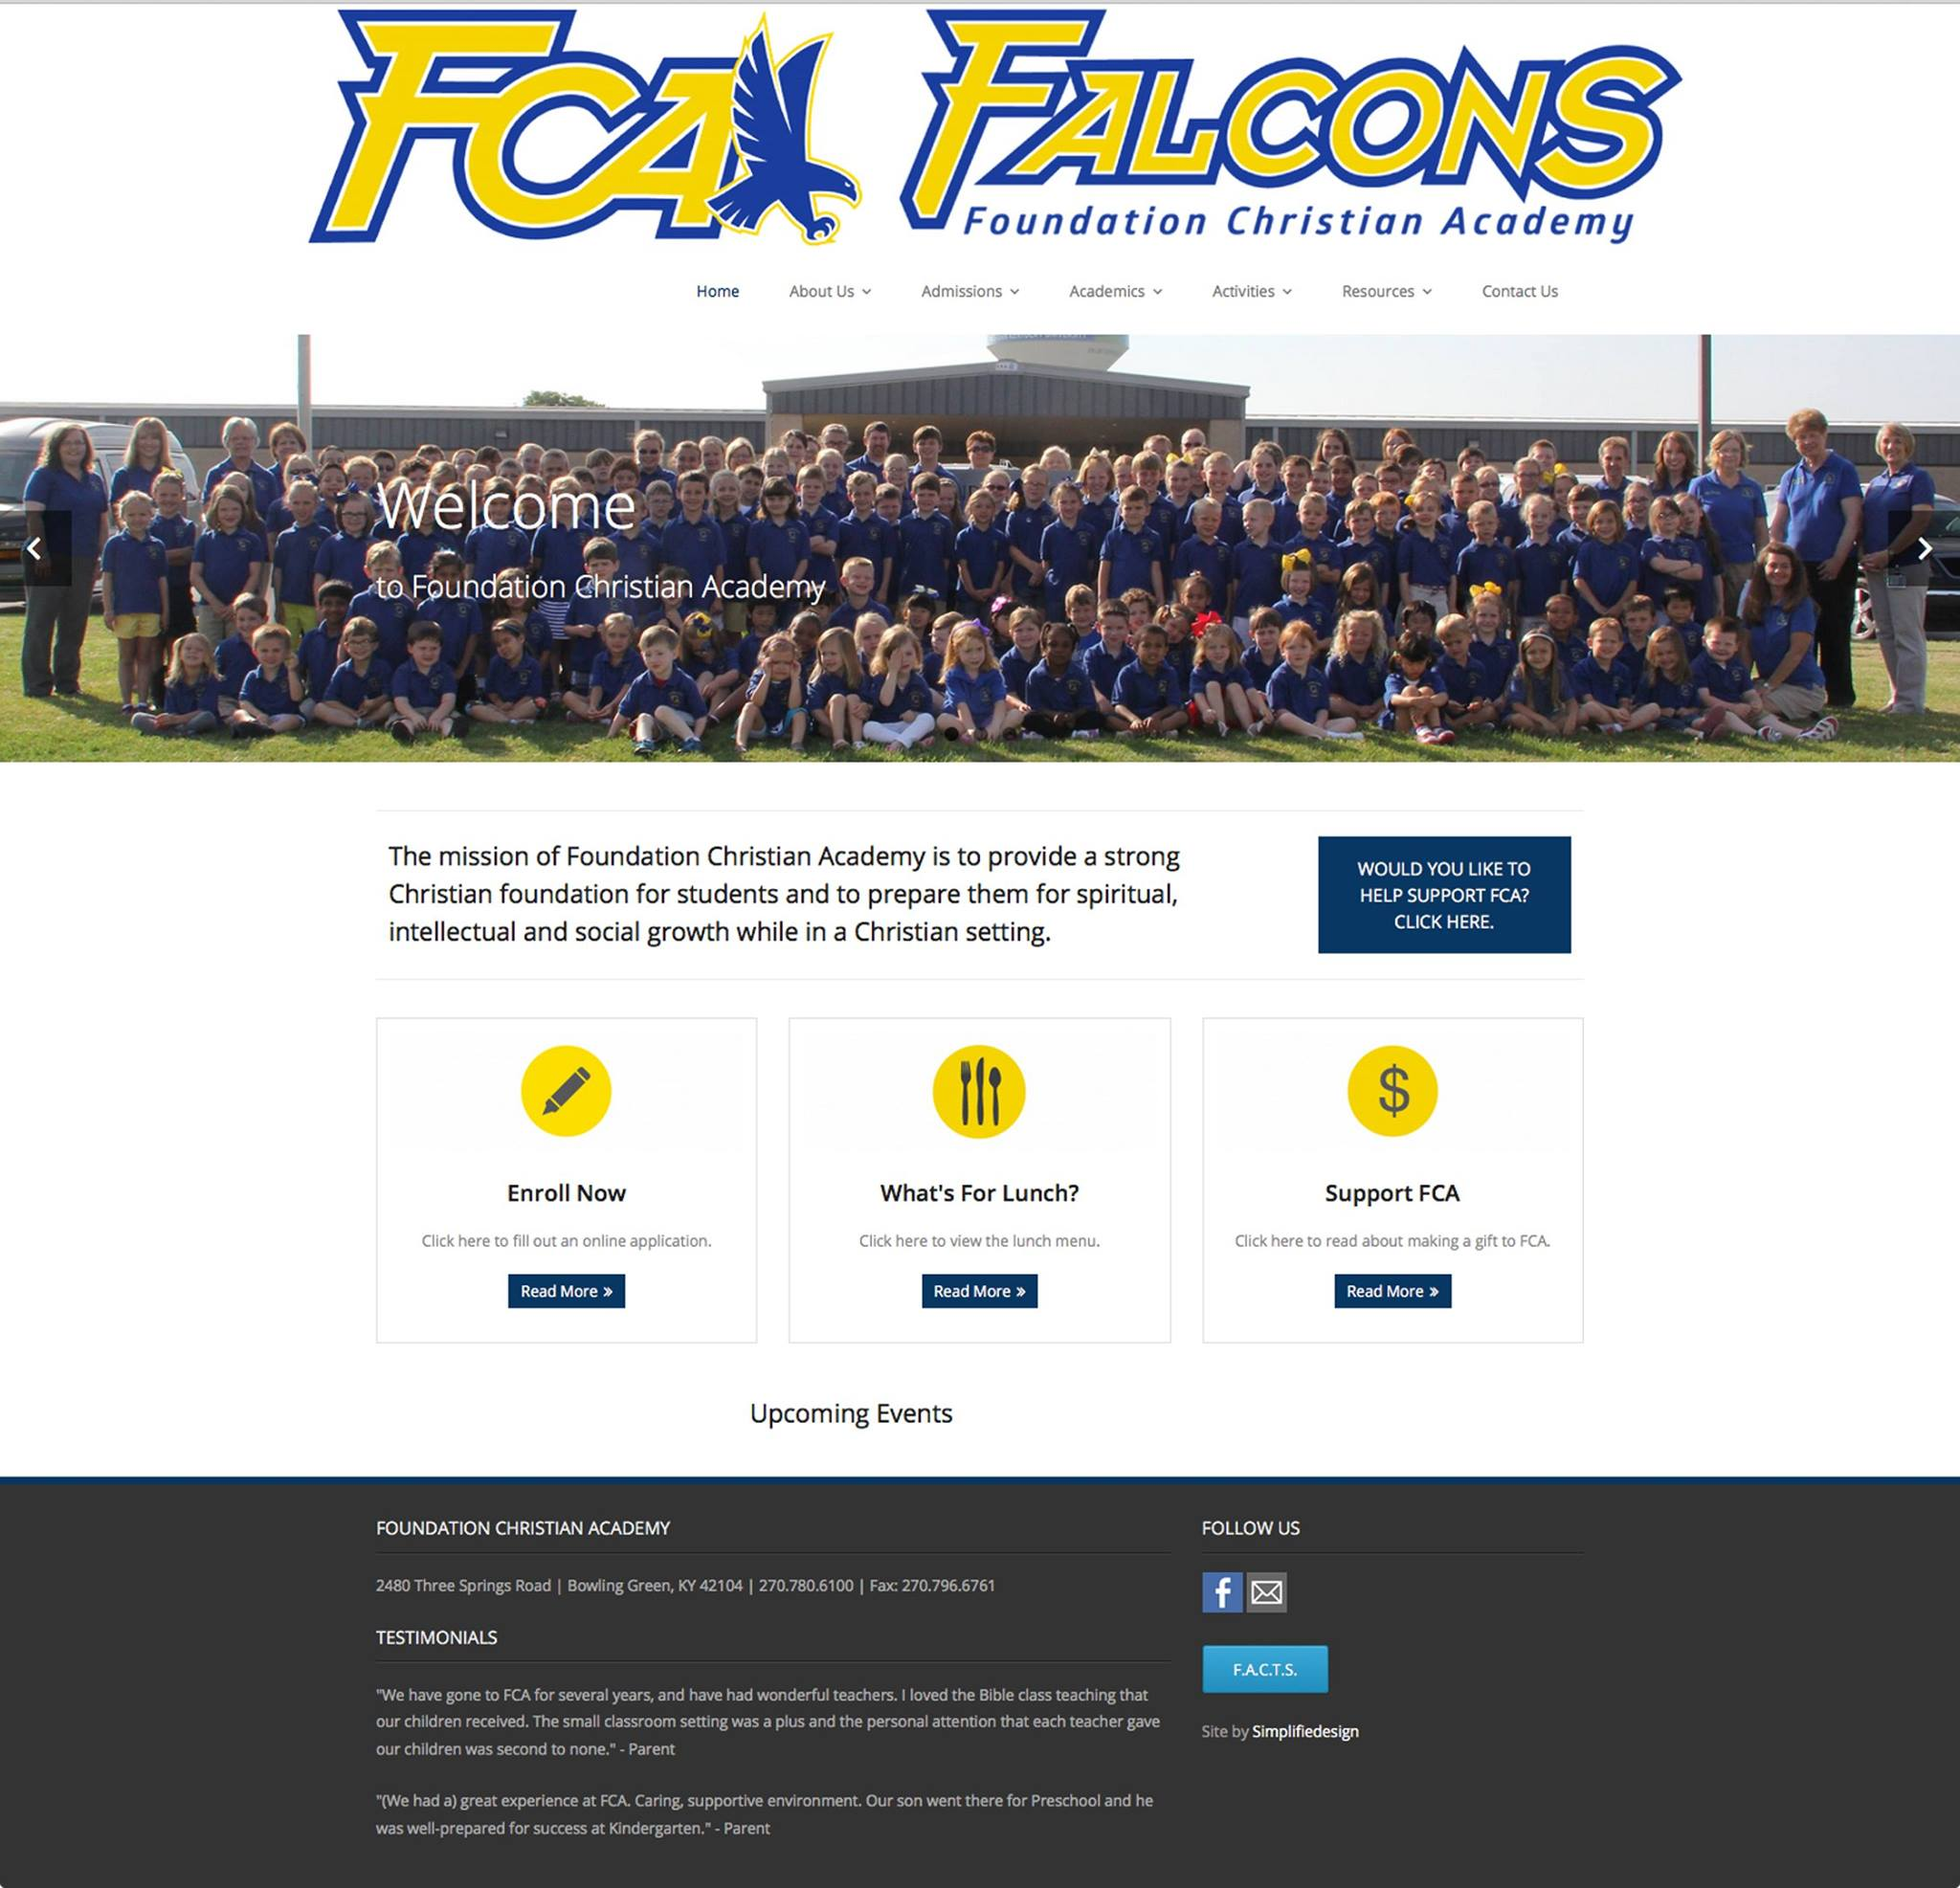 Website Redesign Client:  Foundation Christian Academy